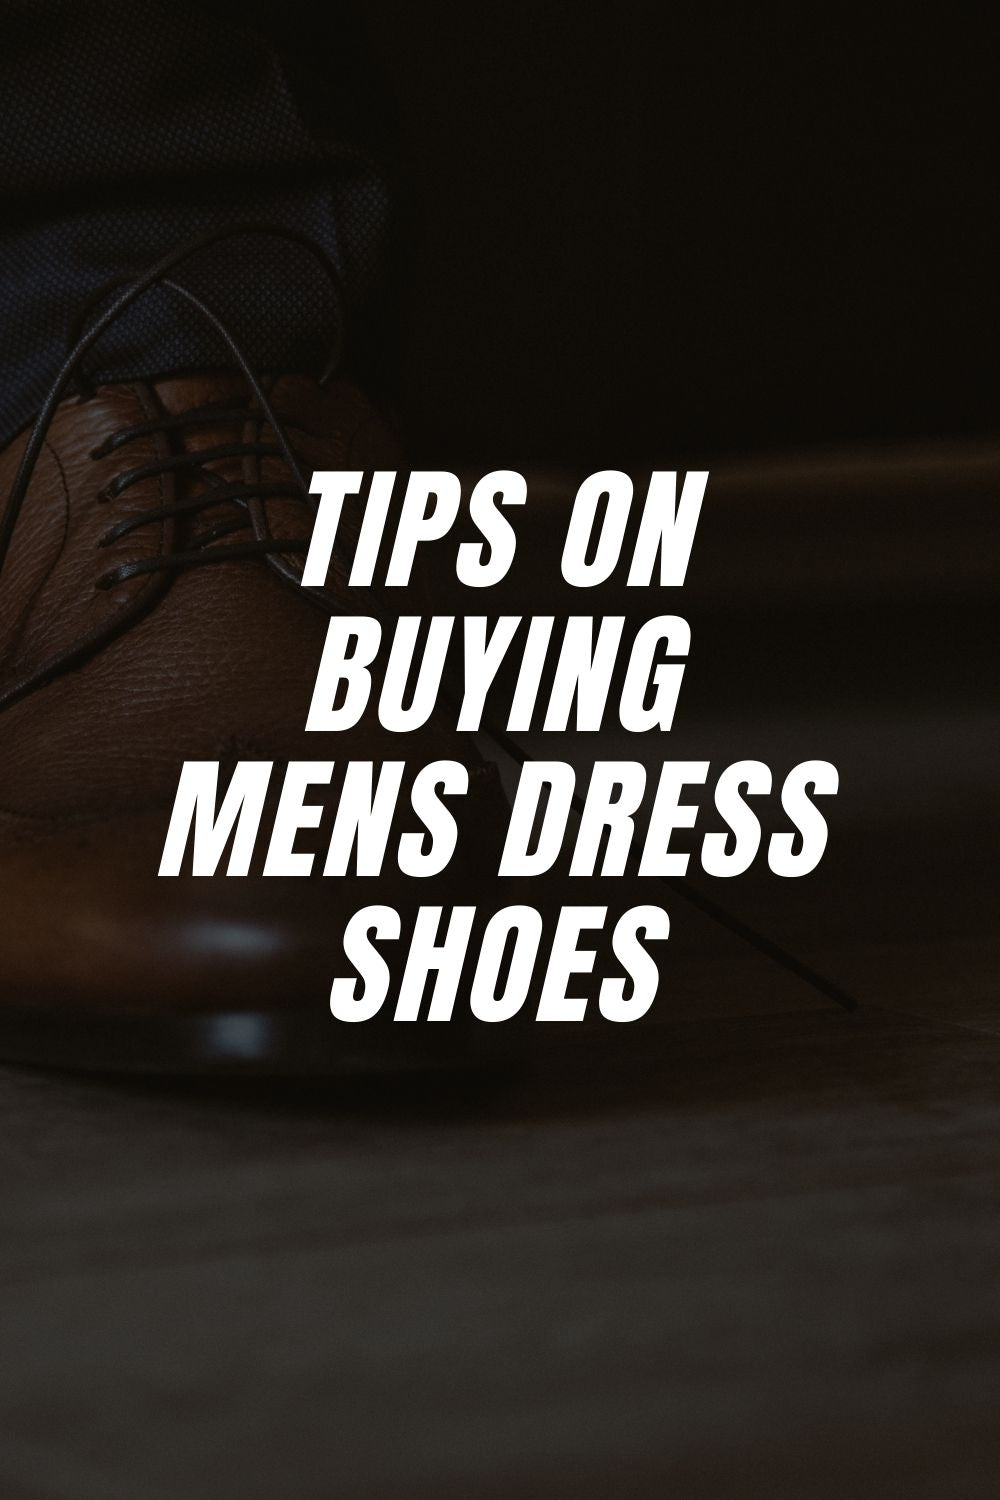 Tips on Buying Mens Dress Shoes